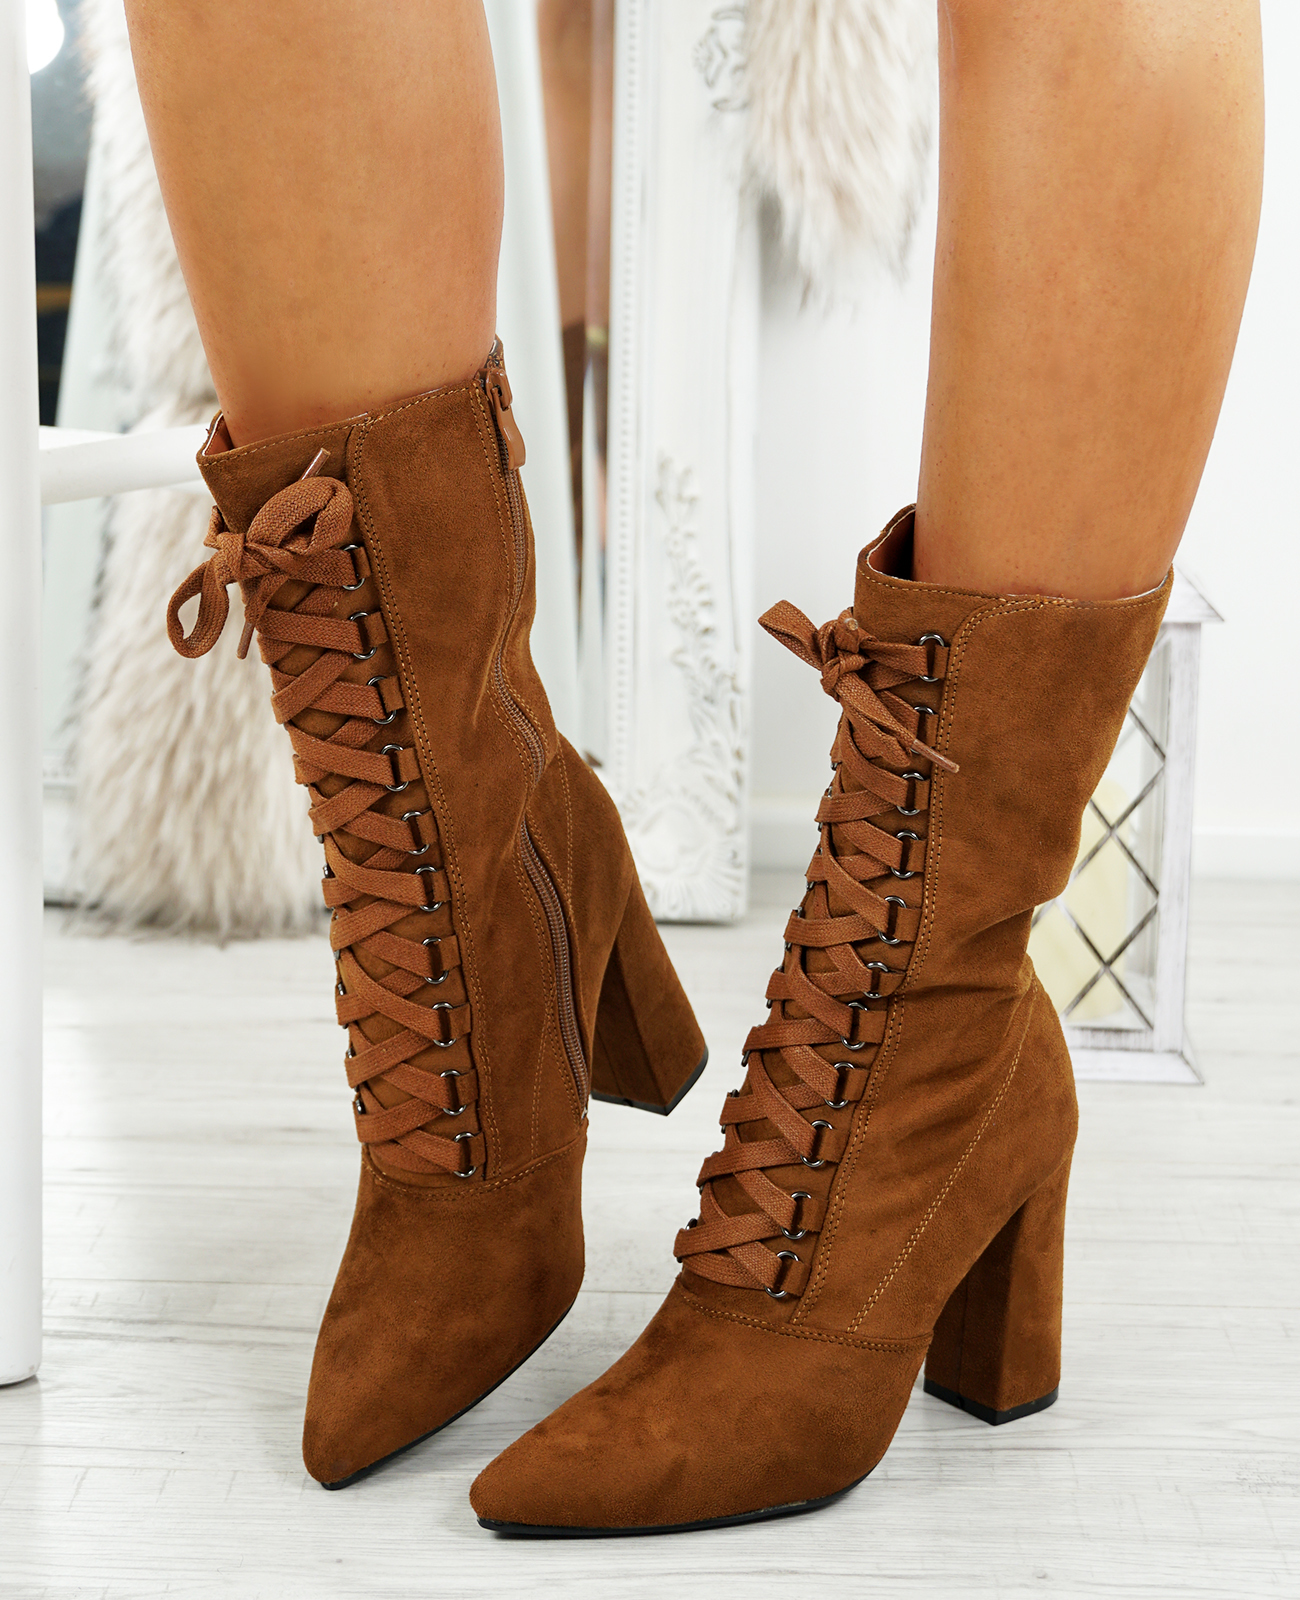 LADIES-WOMENS-HIGH-TOP-ANKLE-BOOTS-SIDE-ZIP-LACE-BLOCK-HEEL-POINTED-TOE-SHOES thumbnail 14